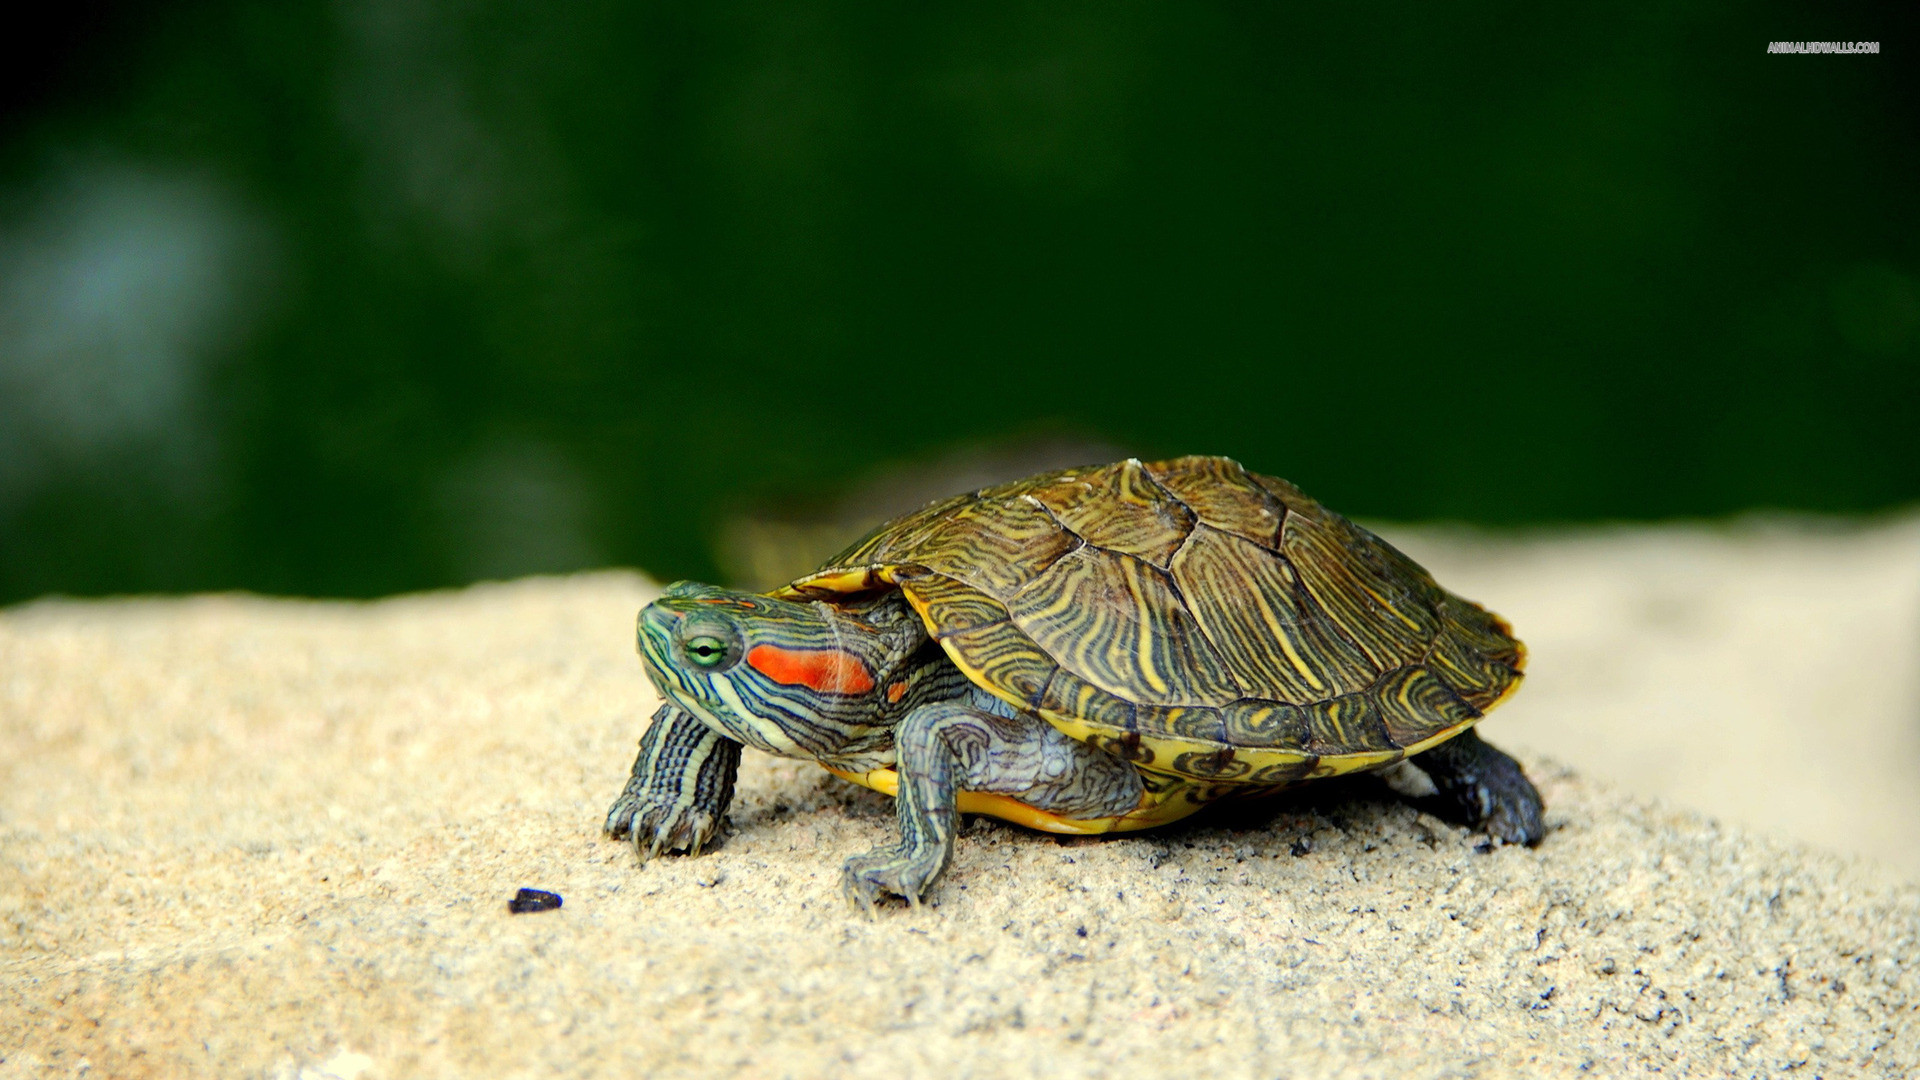 Cute Turtle Wallpaper (59+ images)